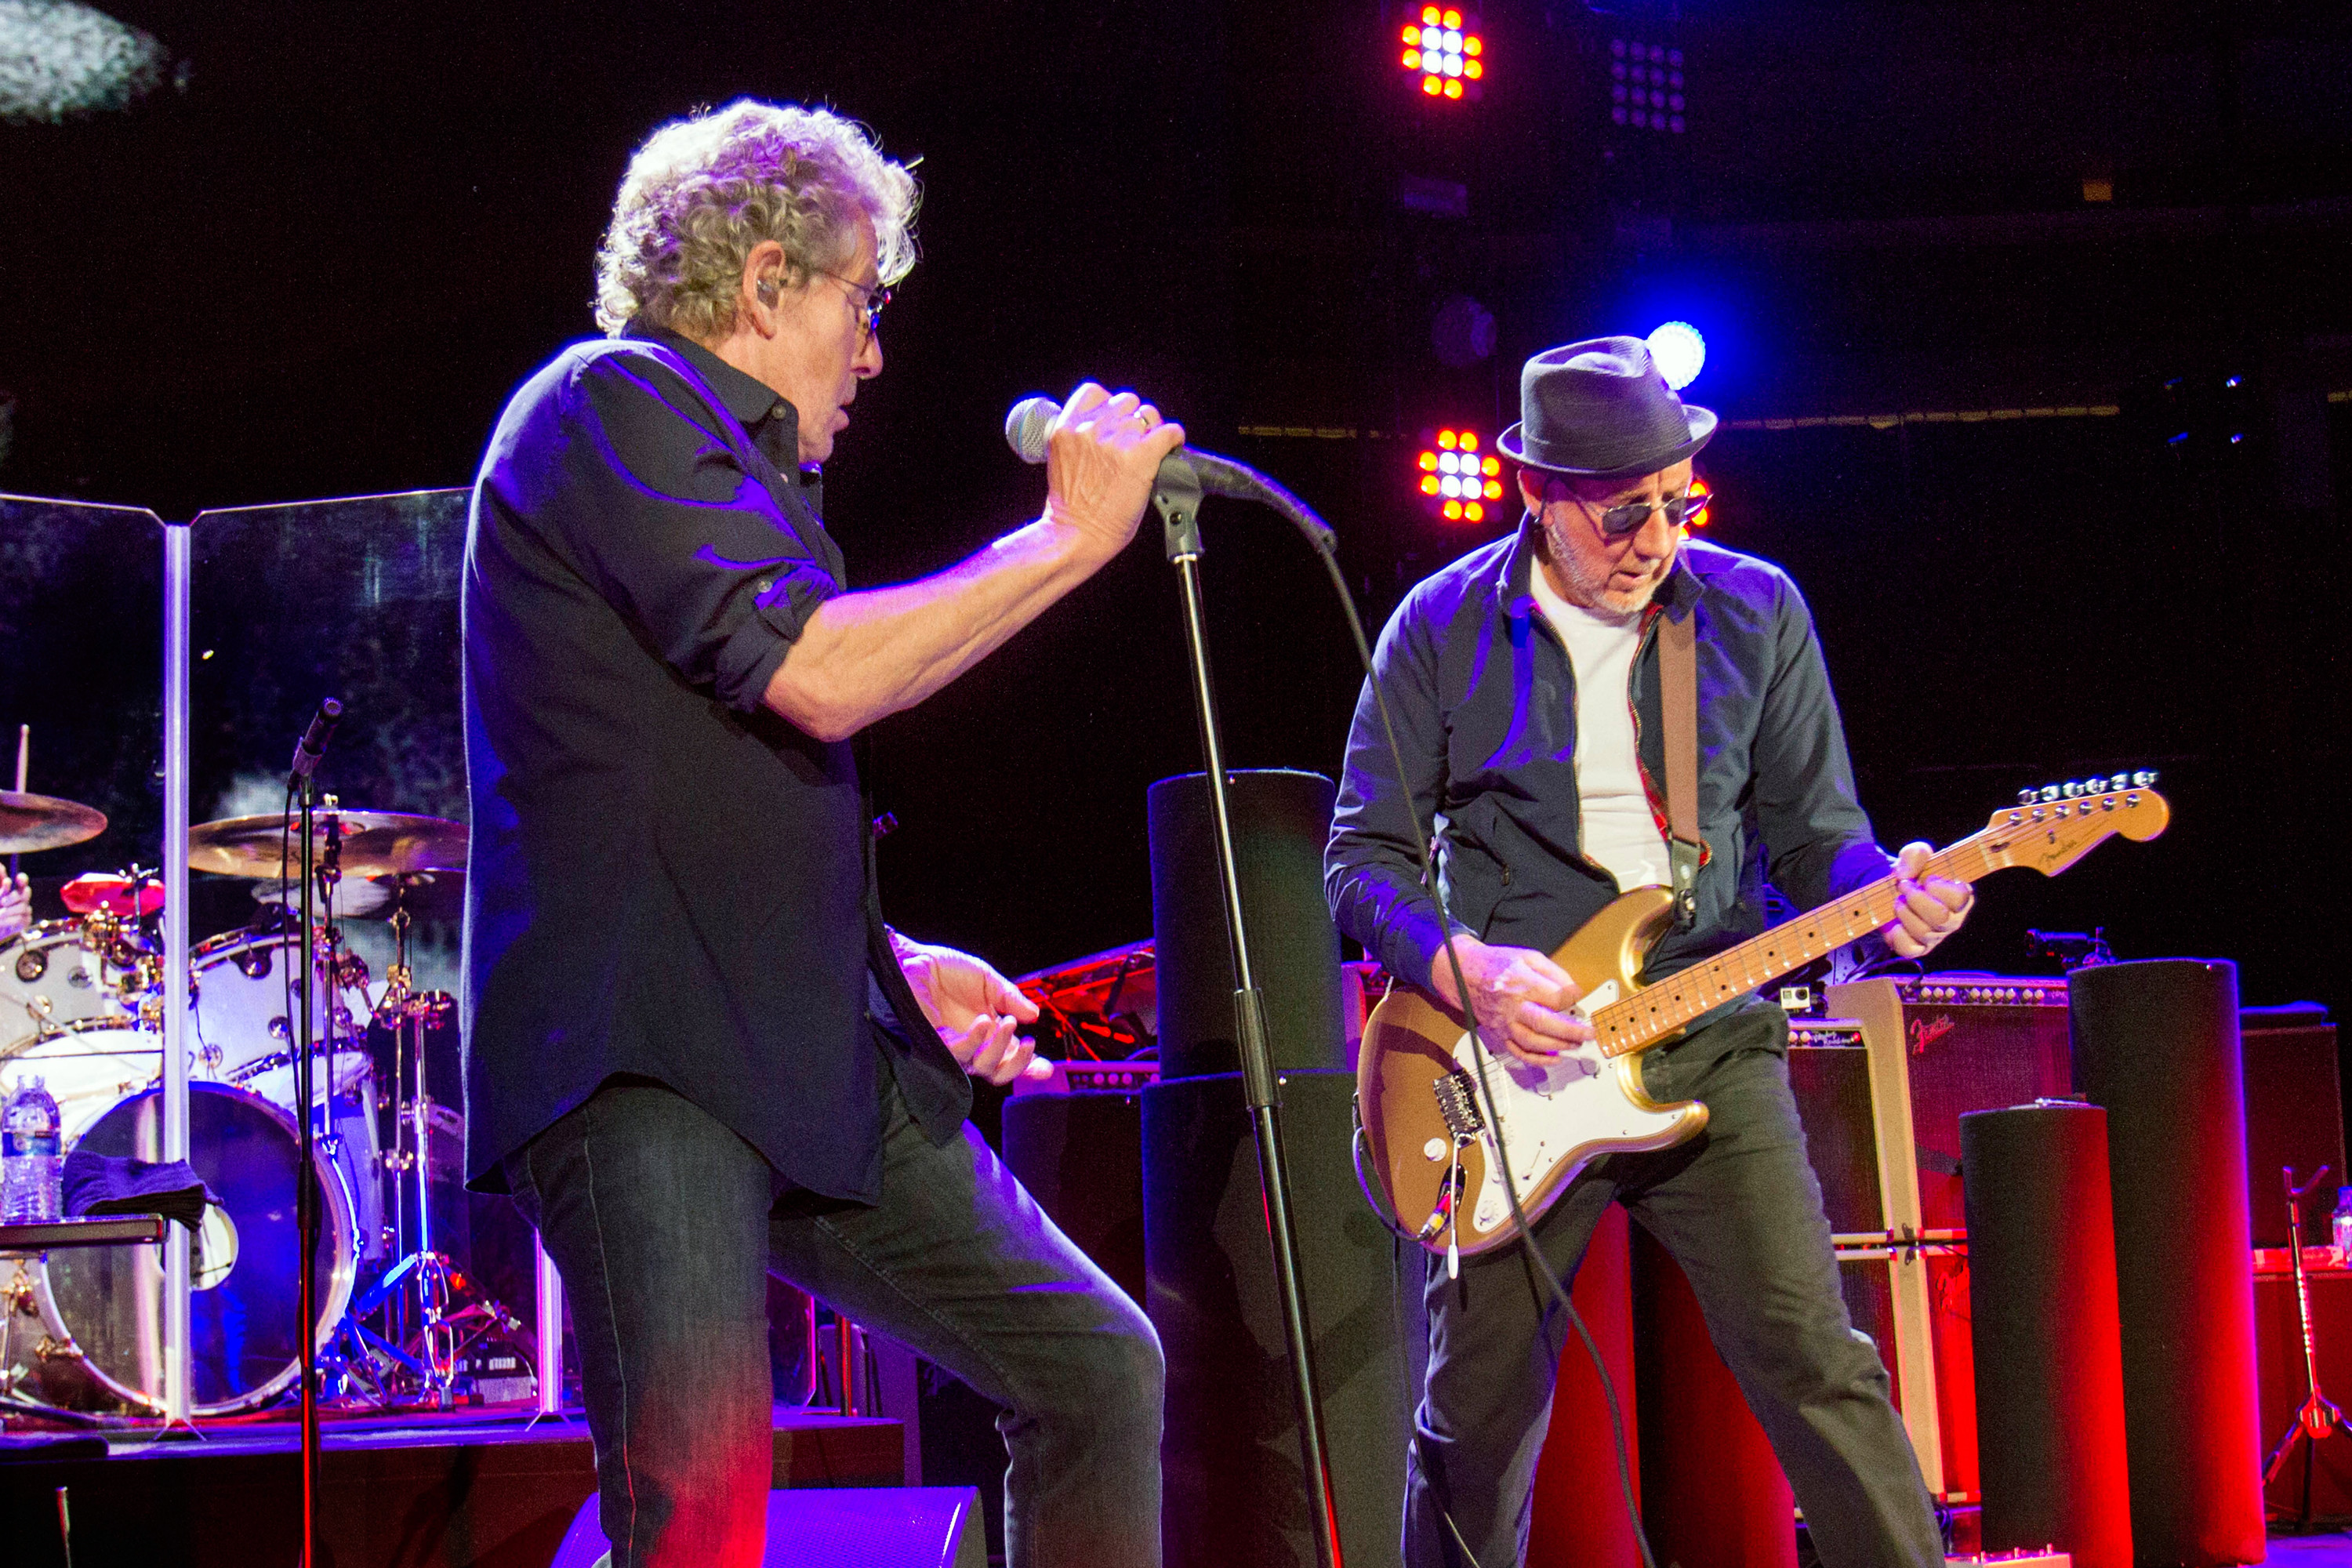 The Who Perform at The Prudential Center. in Newark, NY on March 19, 2016.